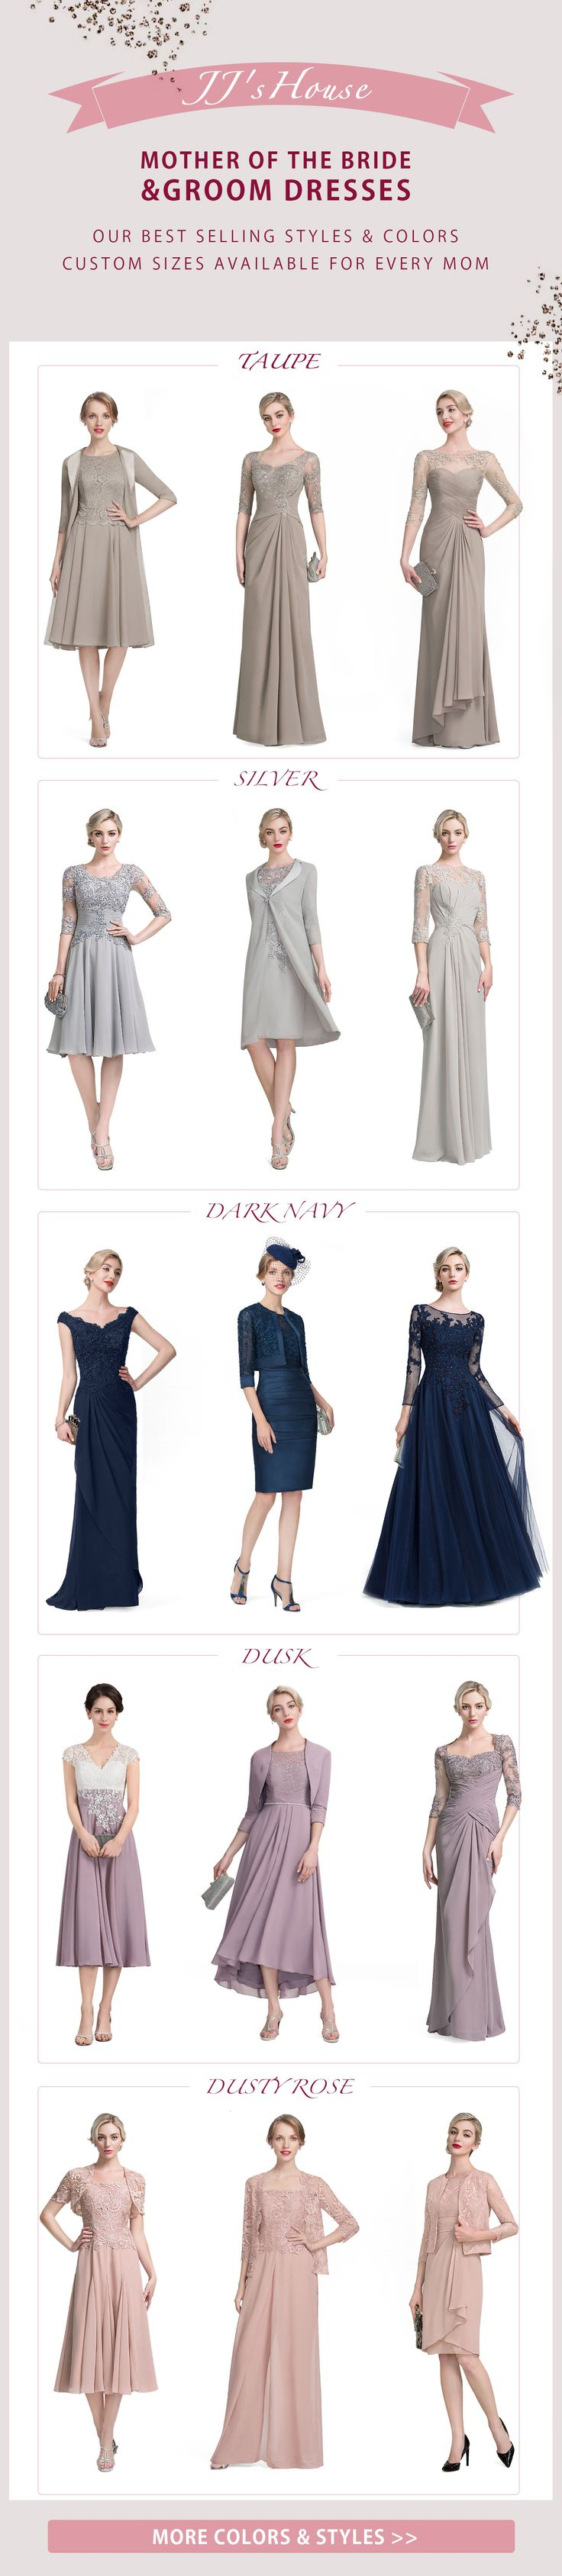 Find the perfect mother of the bride / mother of the groom dress for your child's special day! Look your best with elegant evening dresses in all colors, lengths, and styles, custom-made for a gorgeous fit.